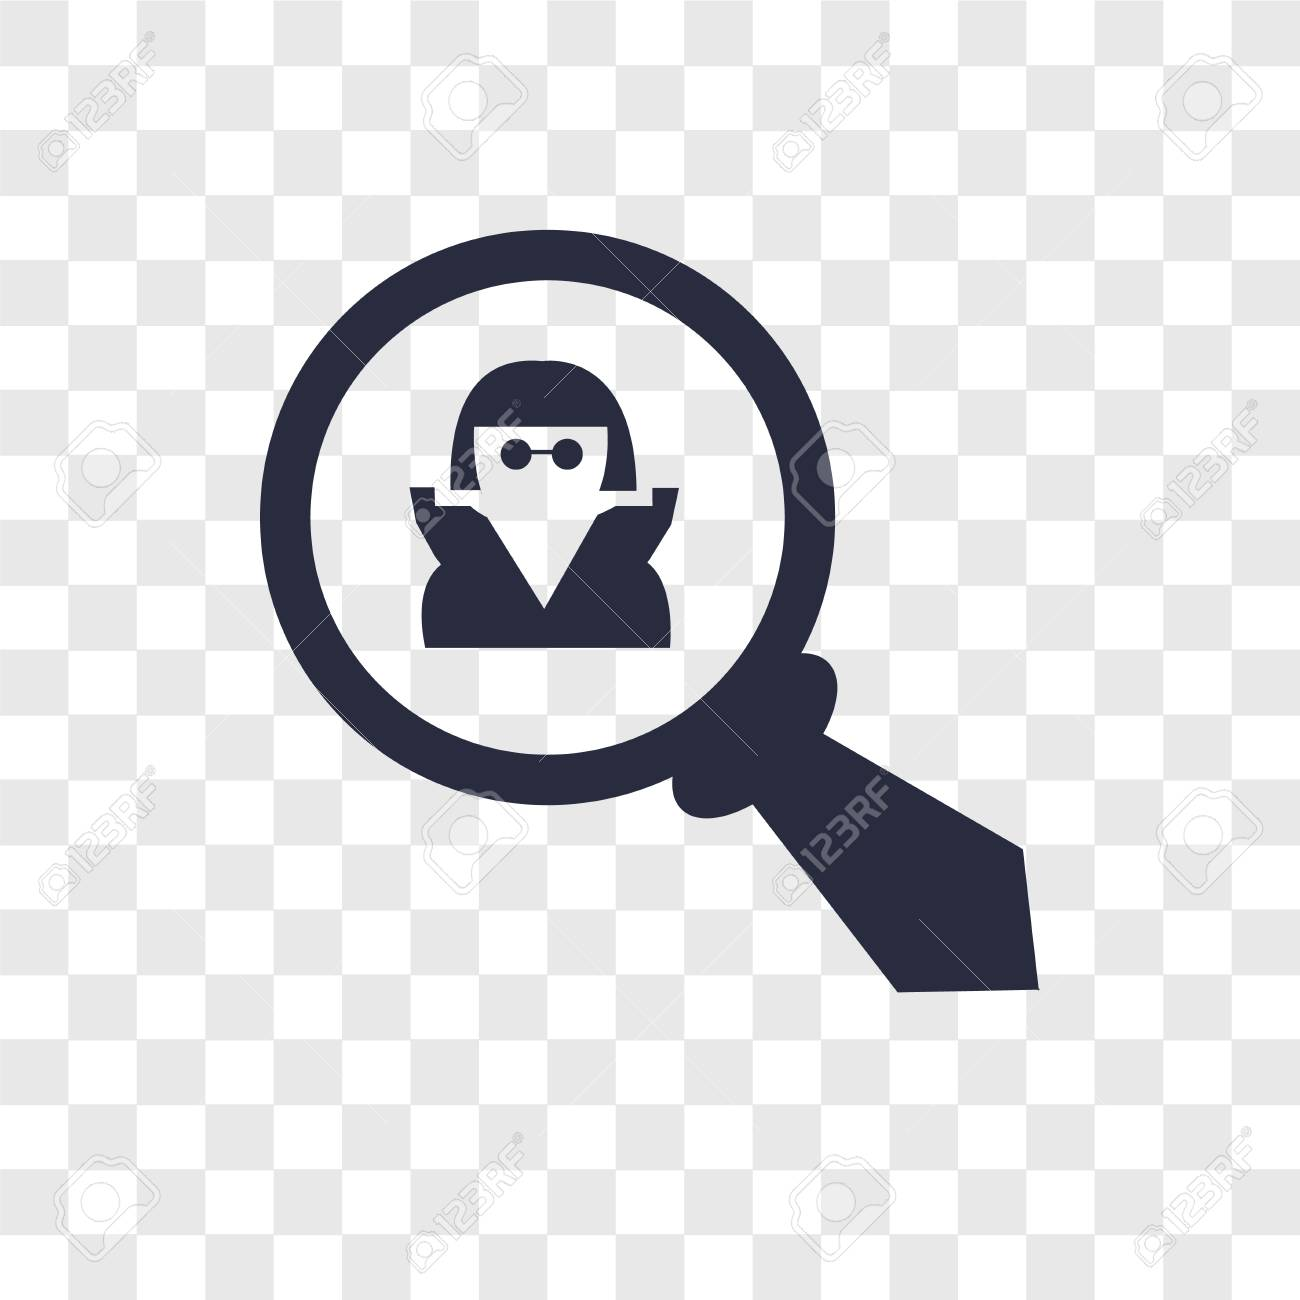 spy vector icon isolated on transparent background spy logo royalty free cliparts vectors and stock illustration image 107296637 spy vector icon isolated on transparent background spy logo